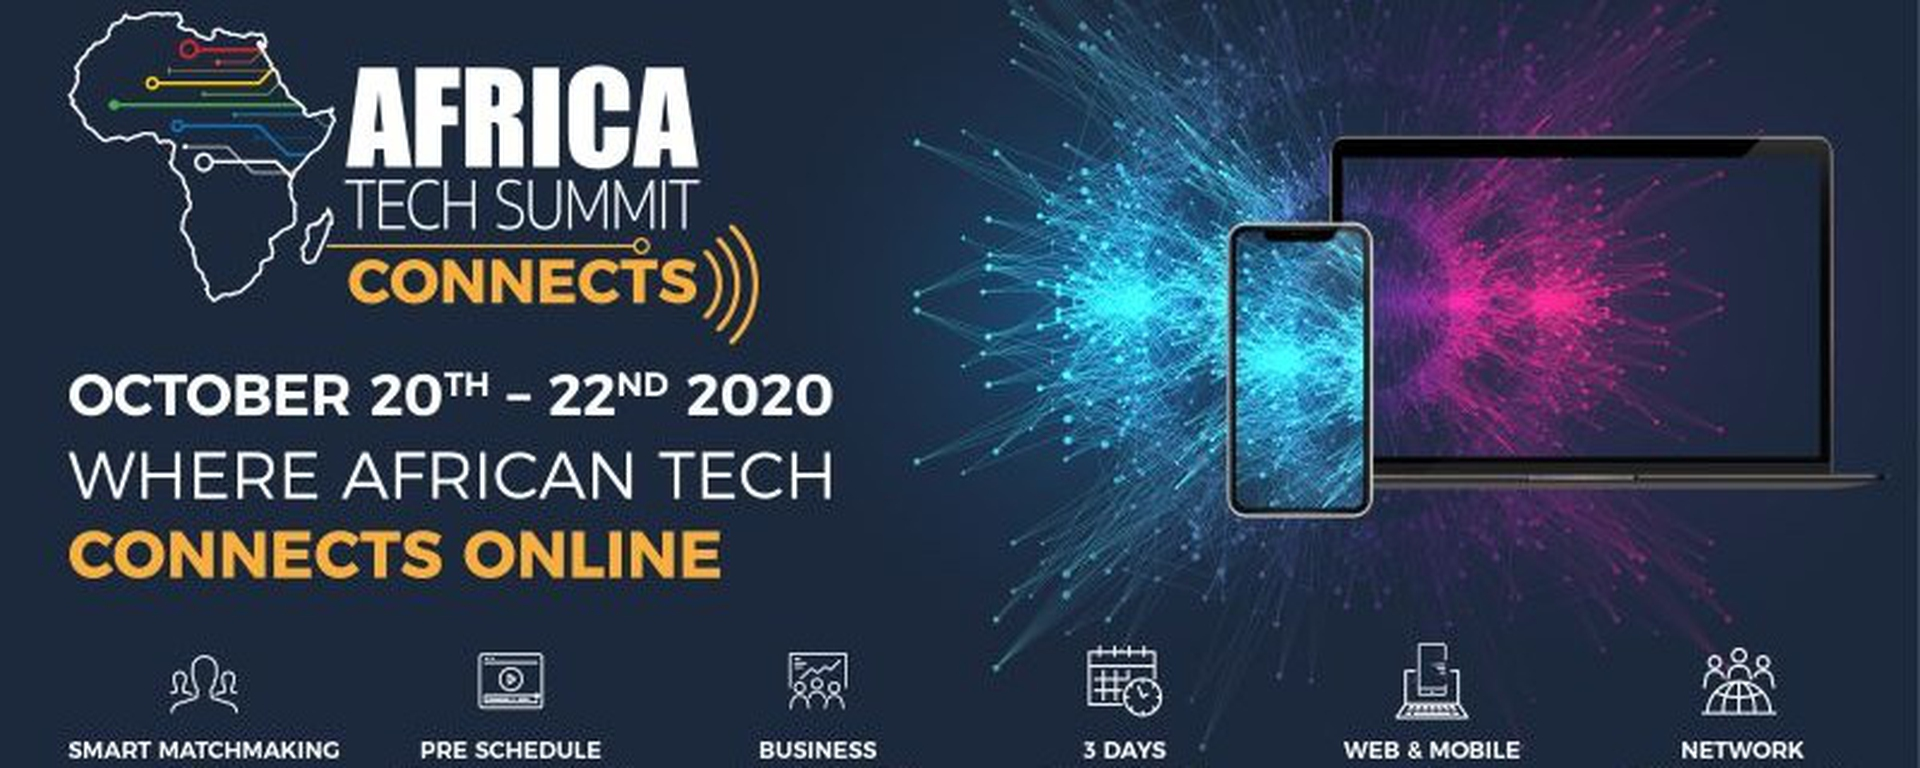 Africa Technology Summit - Africa Tech Summit: Where African Tech Connects Movemeback African event cover image